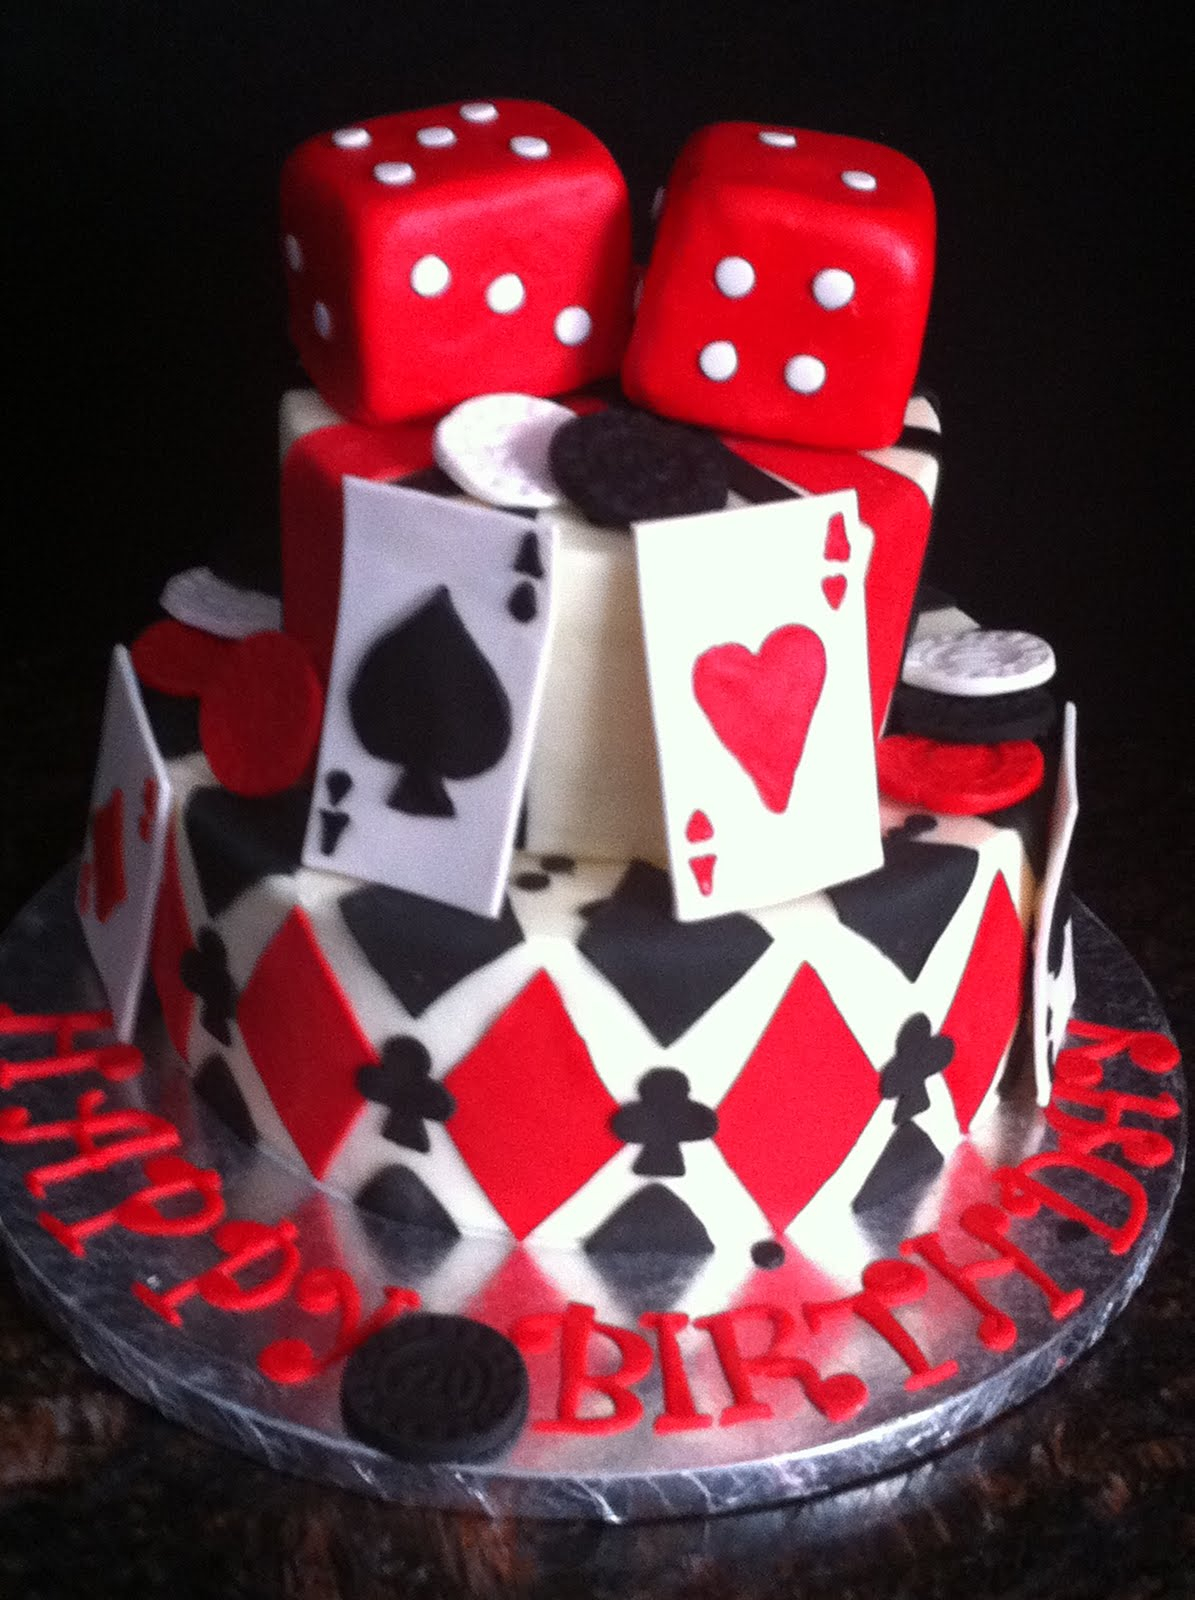 Fancy Playing Card, Poker, Casino Theme Cakes And Cupcakes - Cakes And inside Casino Theme Party Decorations